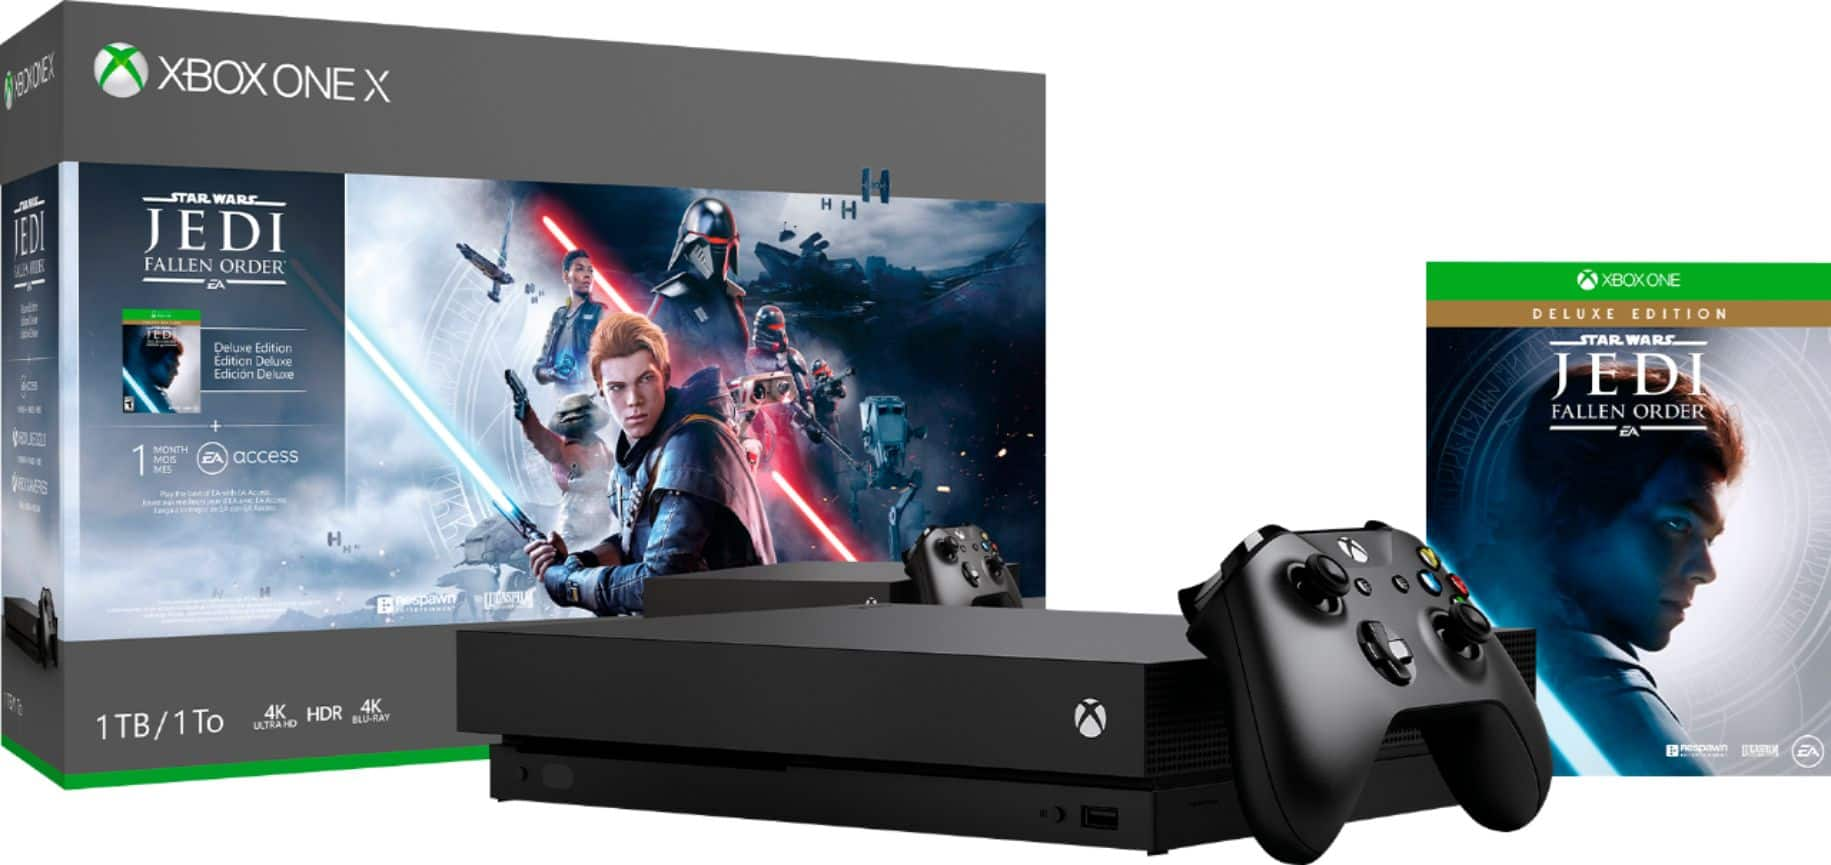 299.00 Xbox One X at Best Buy $299